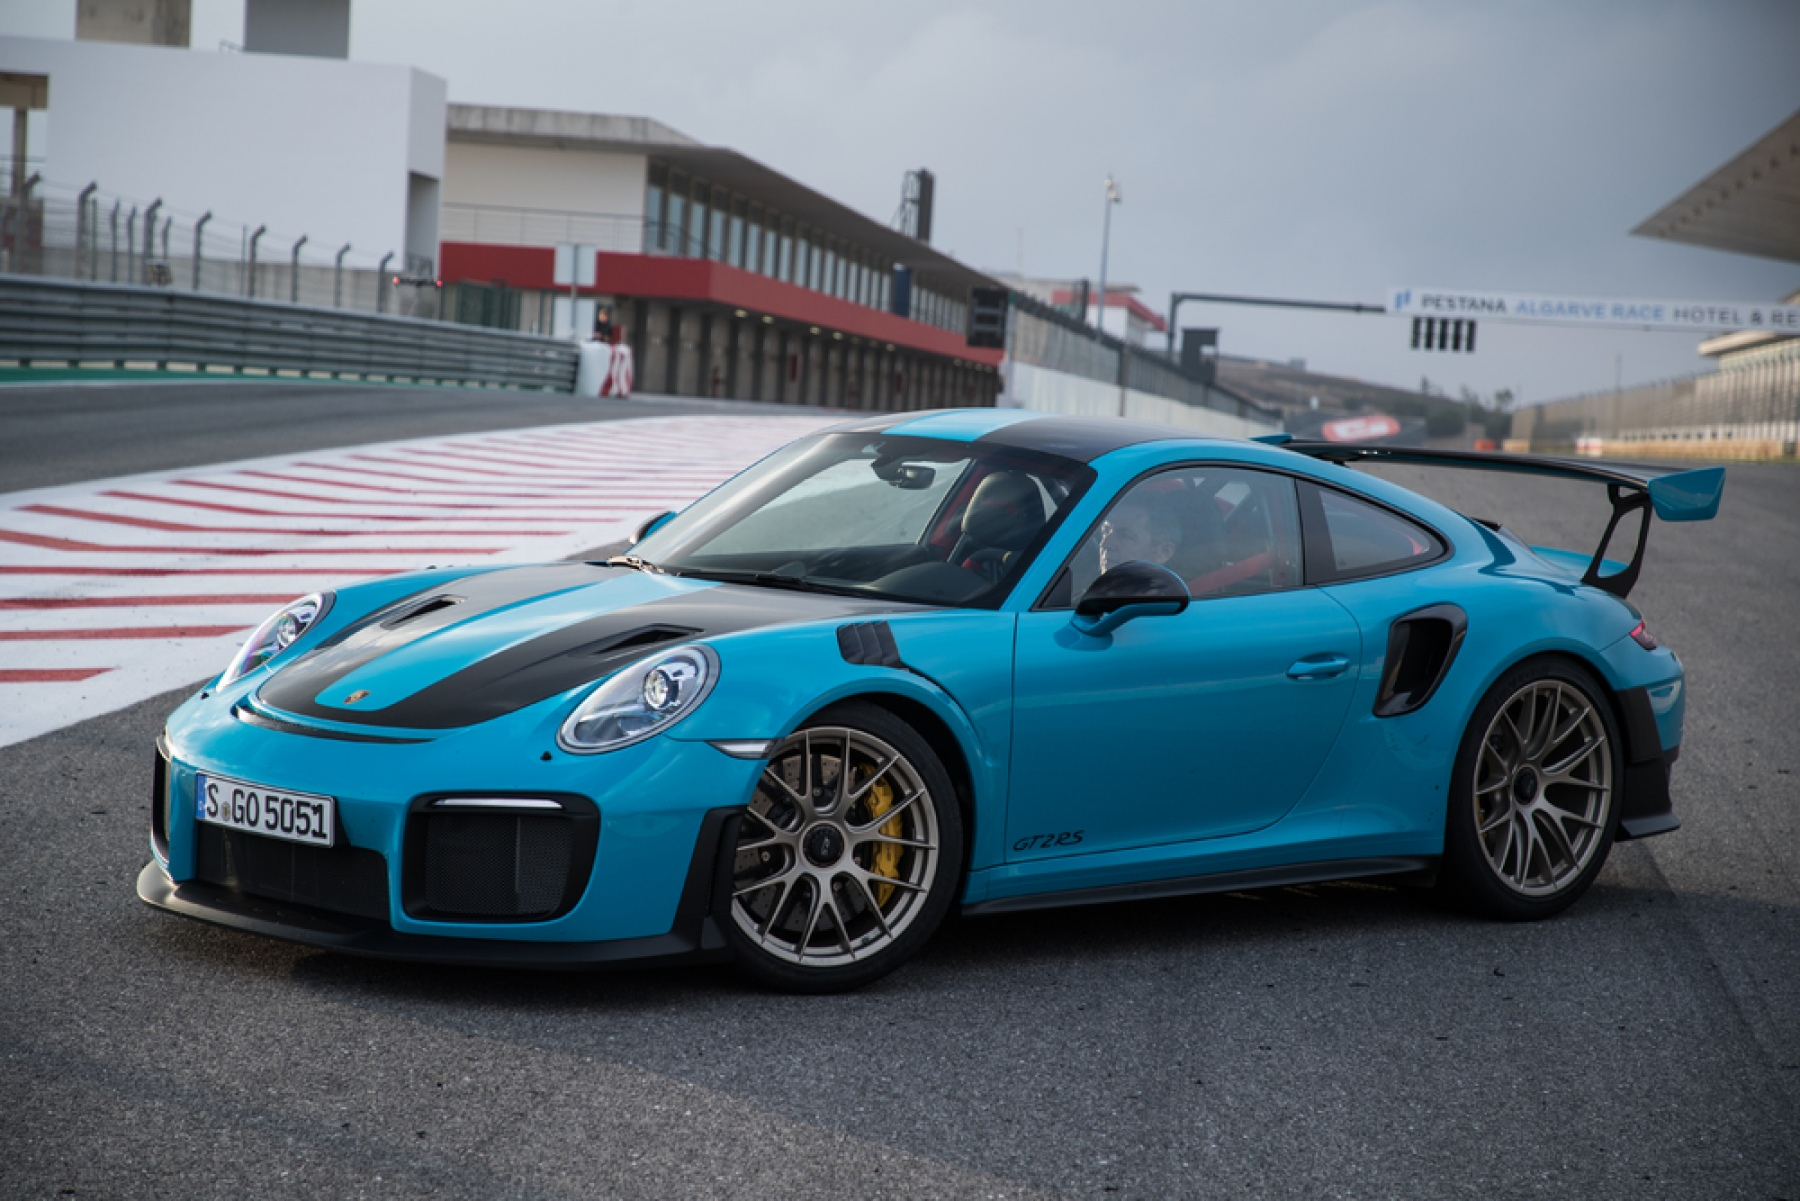 911 gt2 rs miami blue la nuova porsche 911 gt2 rs. Black Bedroom Furniture Sets. Home Design Ideas